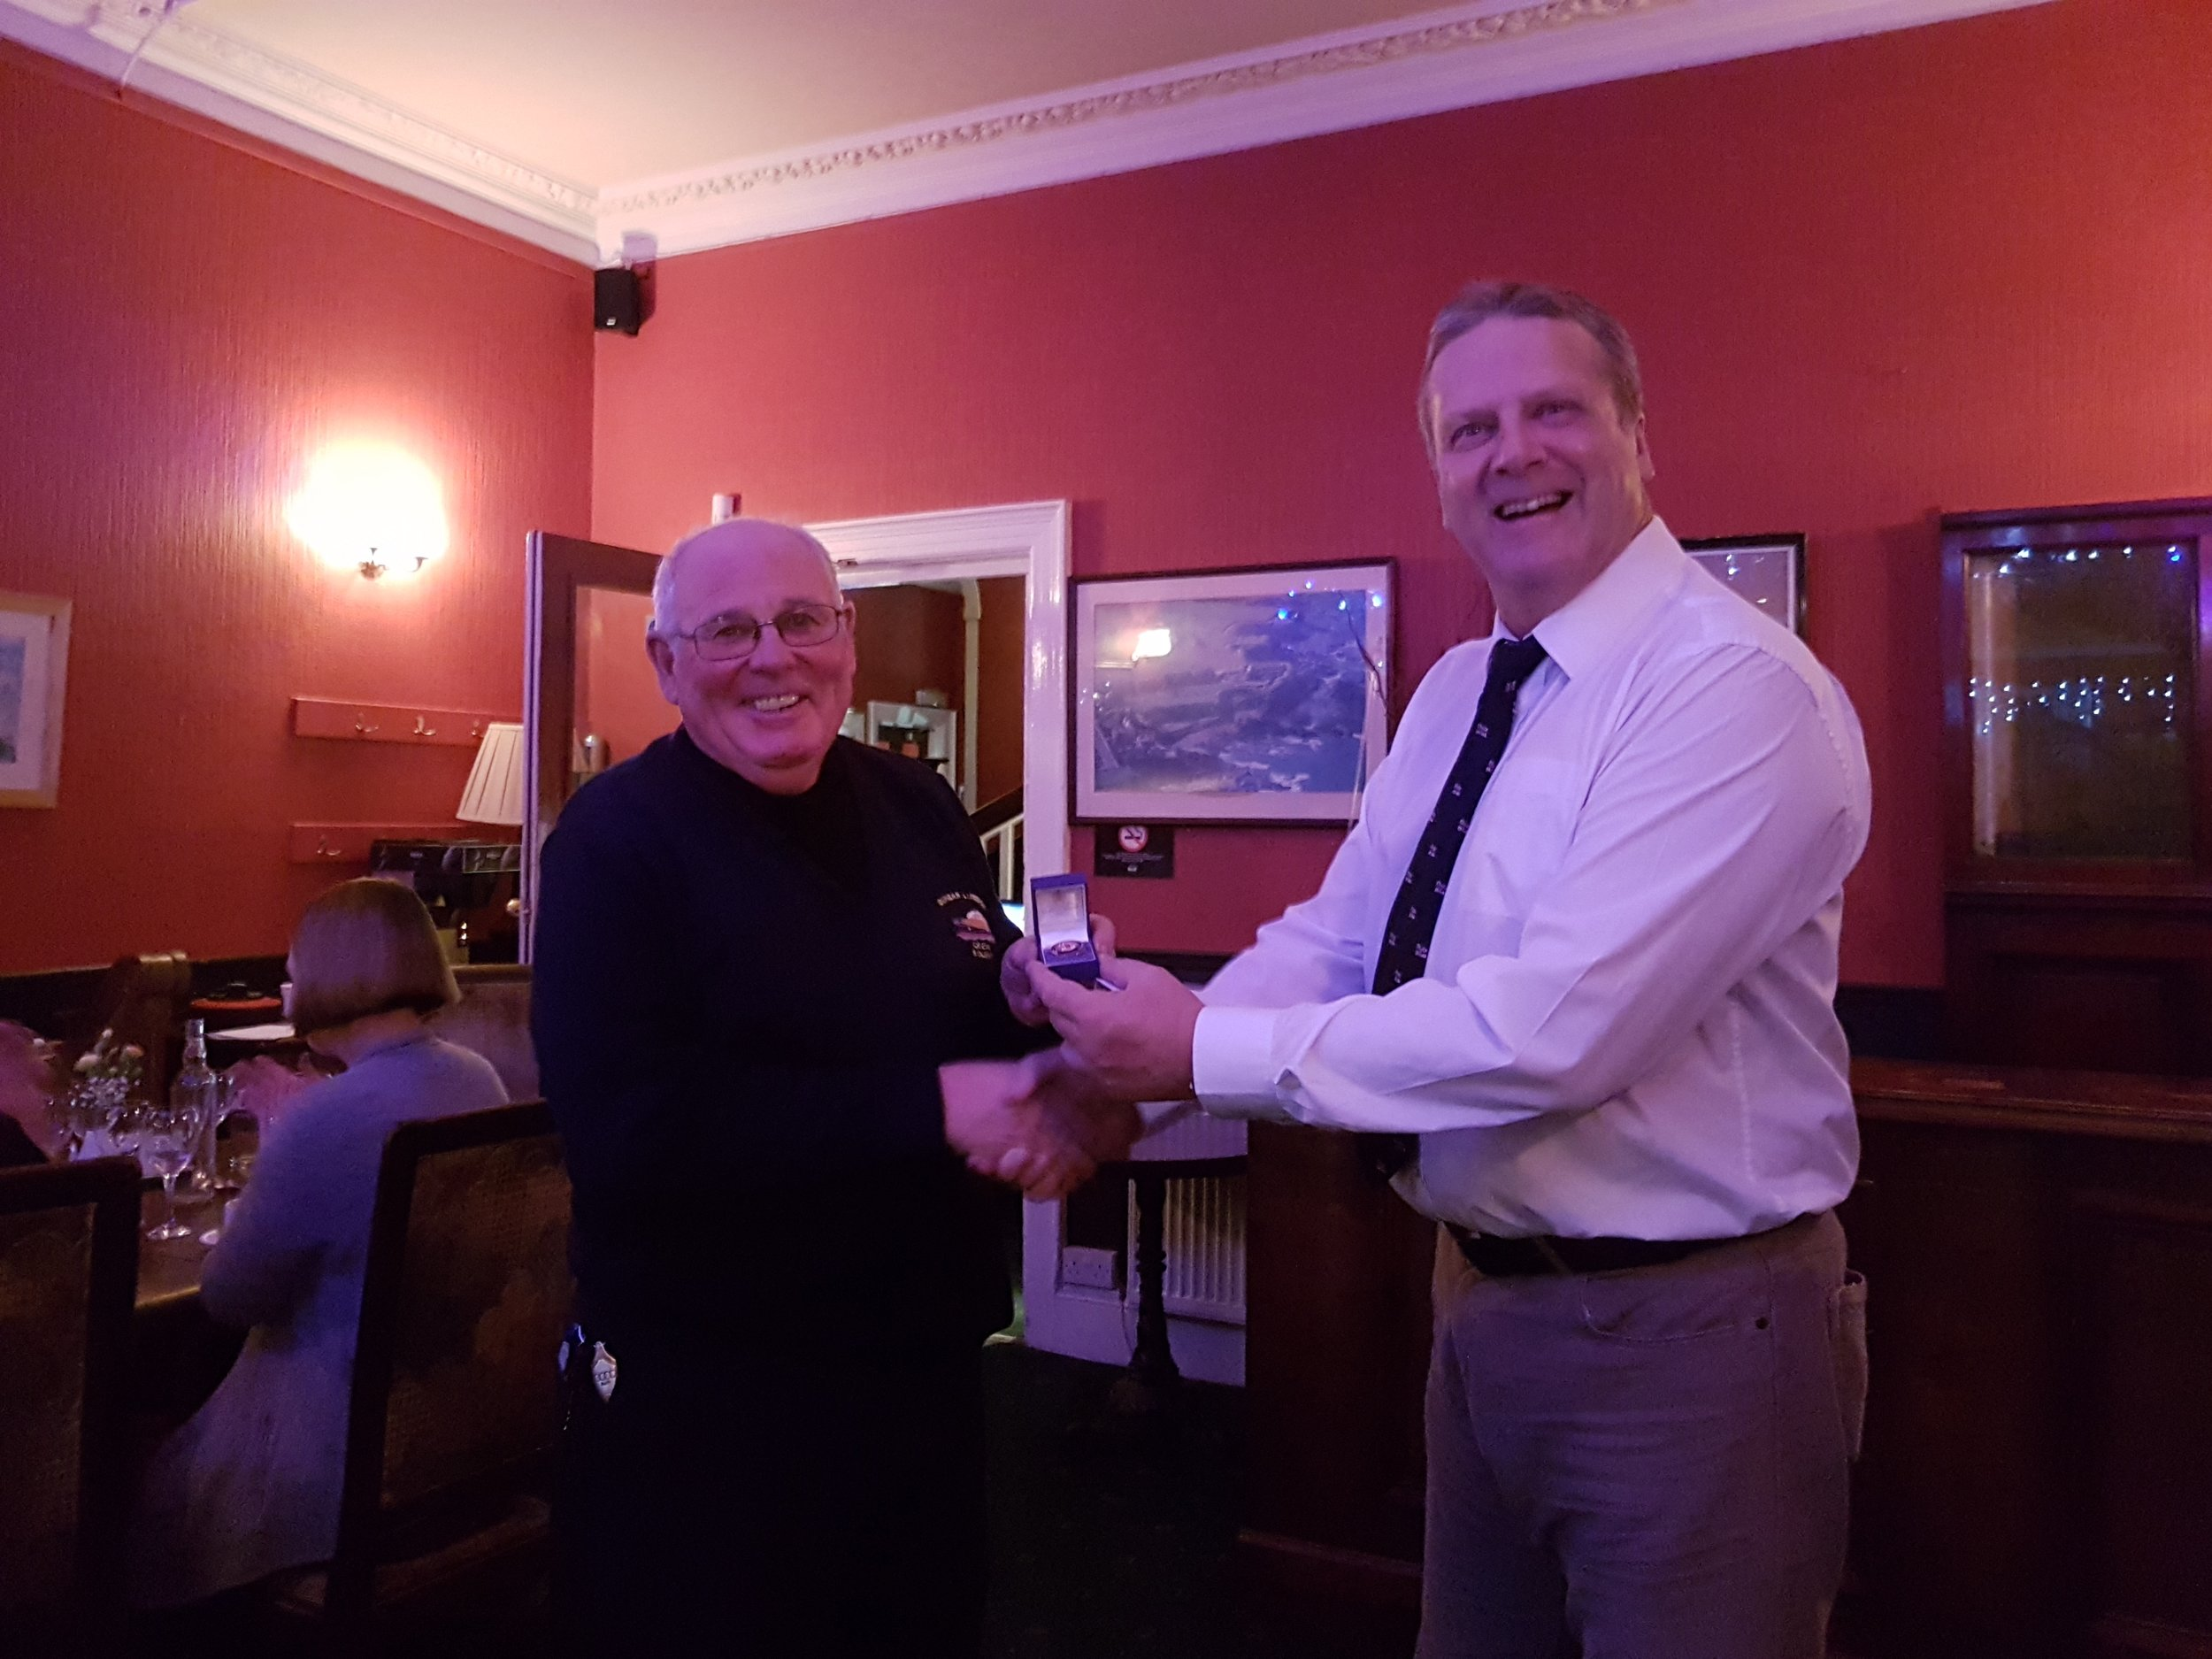 Mike on the left being presented his long service medal by Dave Anderson the lifeboat operations manager at Dunbar.